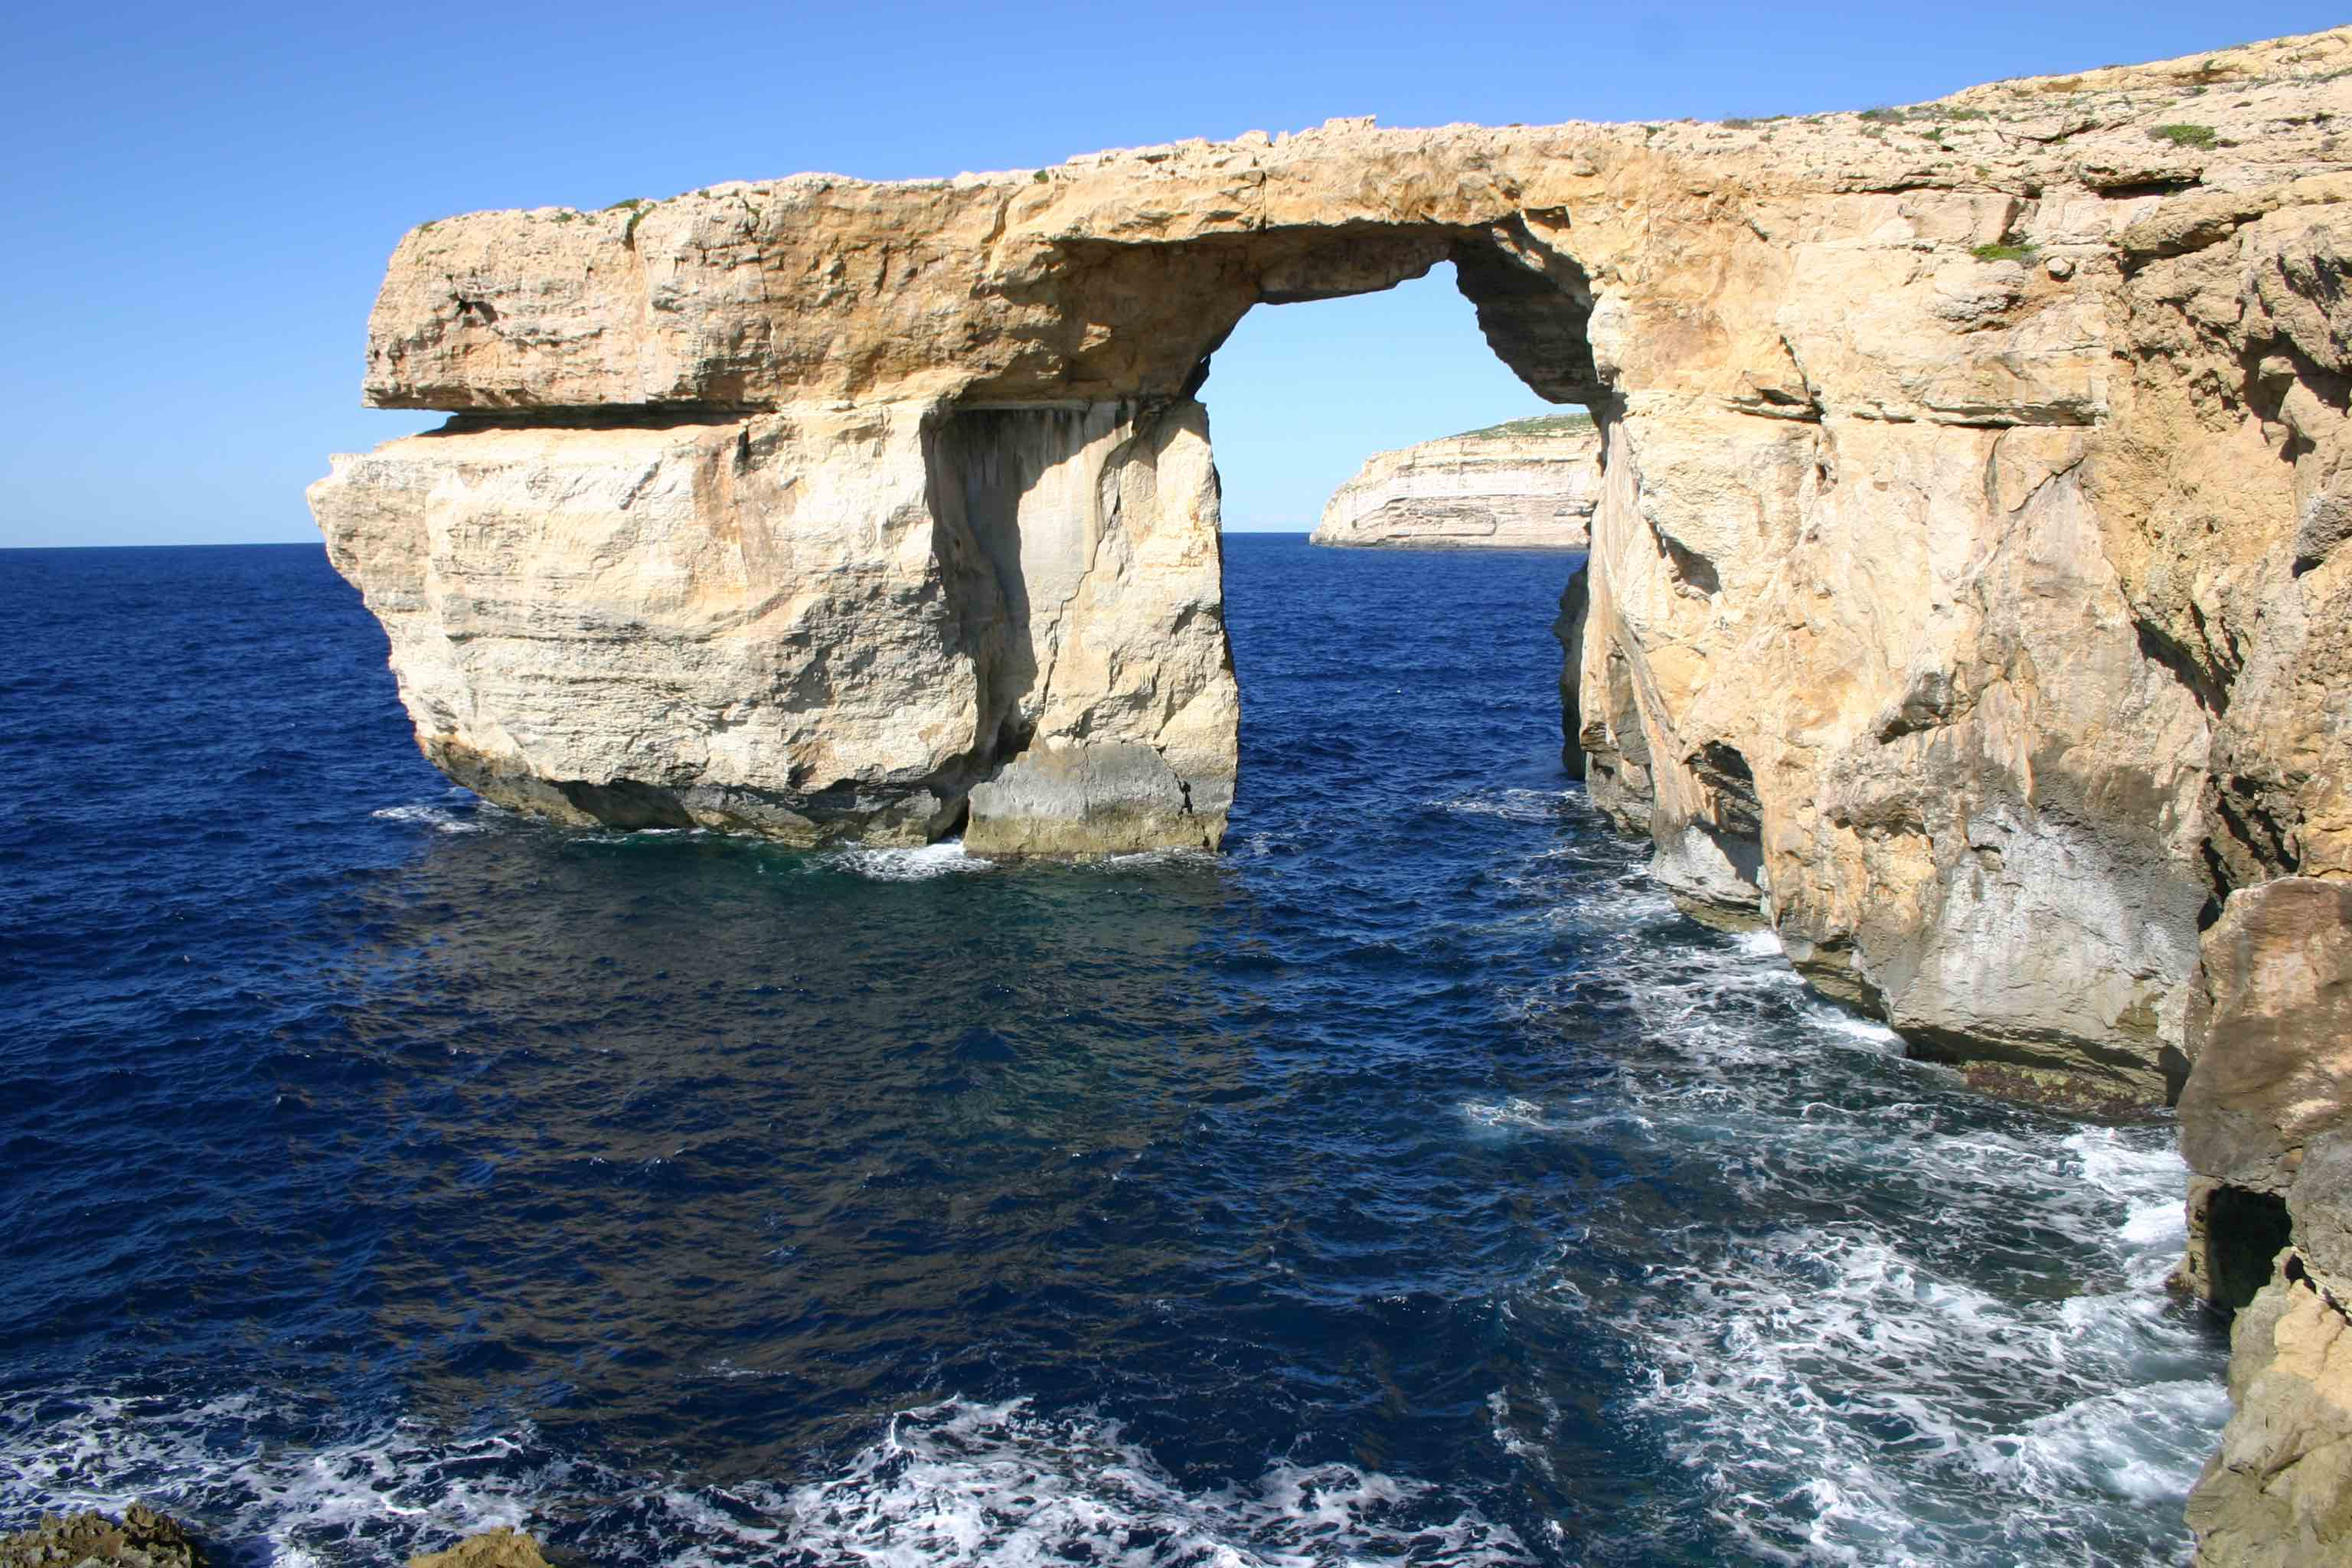 The Azure Window, Gozo, November 2009